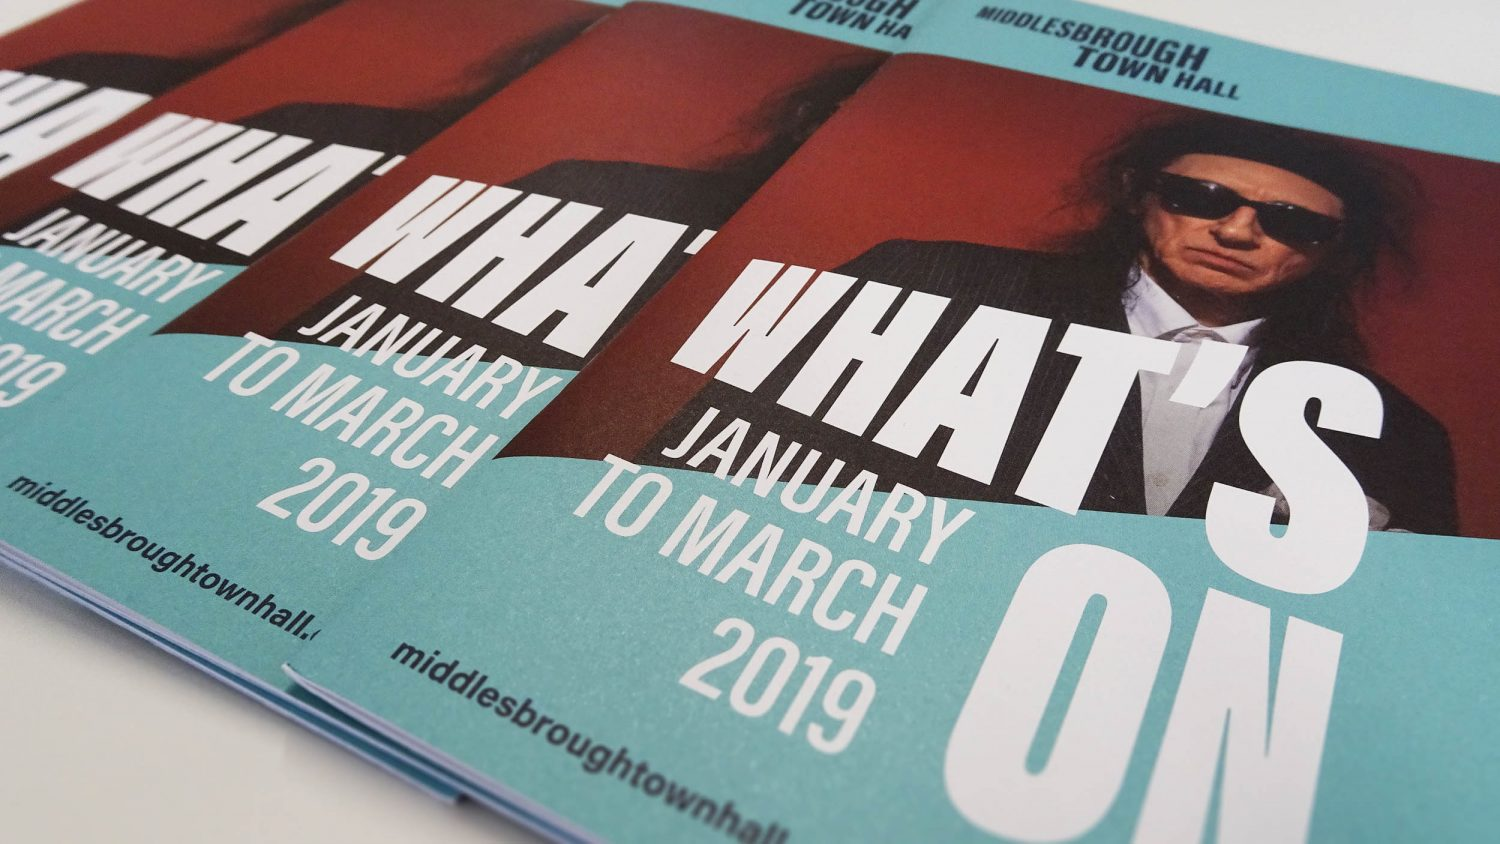 Branding and what's on guide for arts, culture and music venue Middlesbrough Town Hall by Altogether Creative.